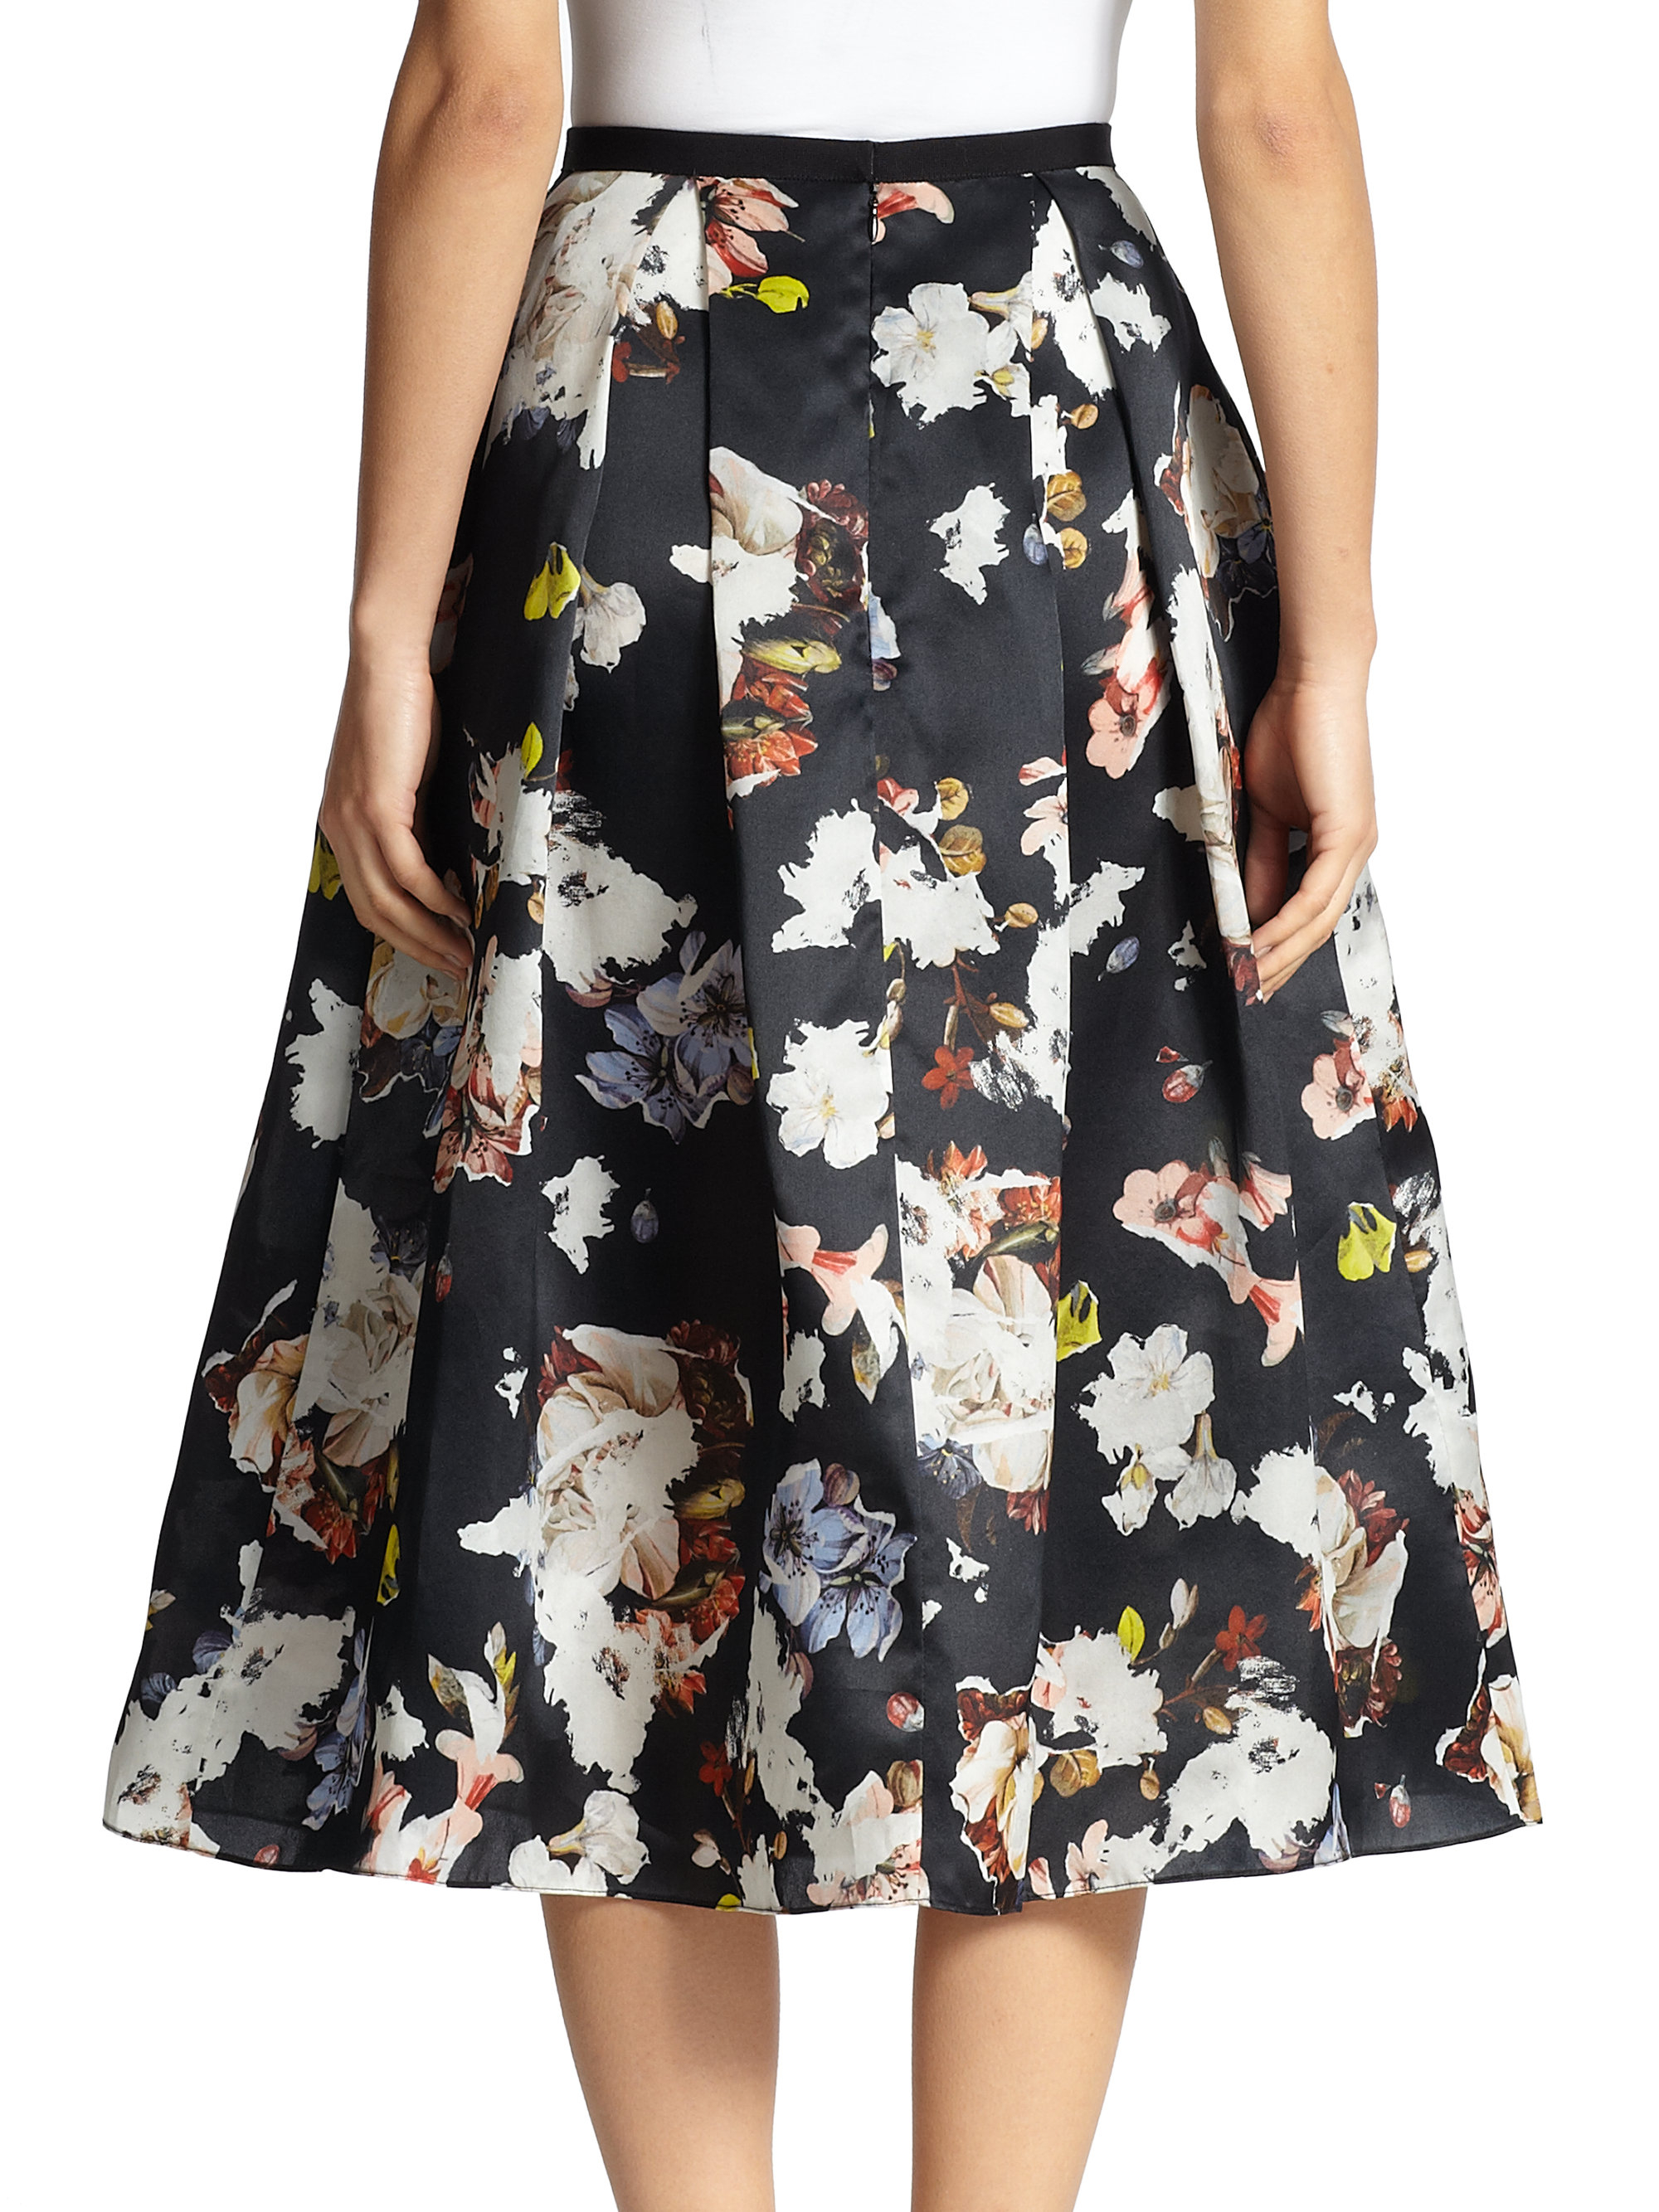 Erdem Imari Floral Silk Midi Skirt in Black | Lyst